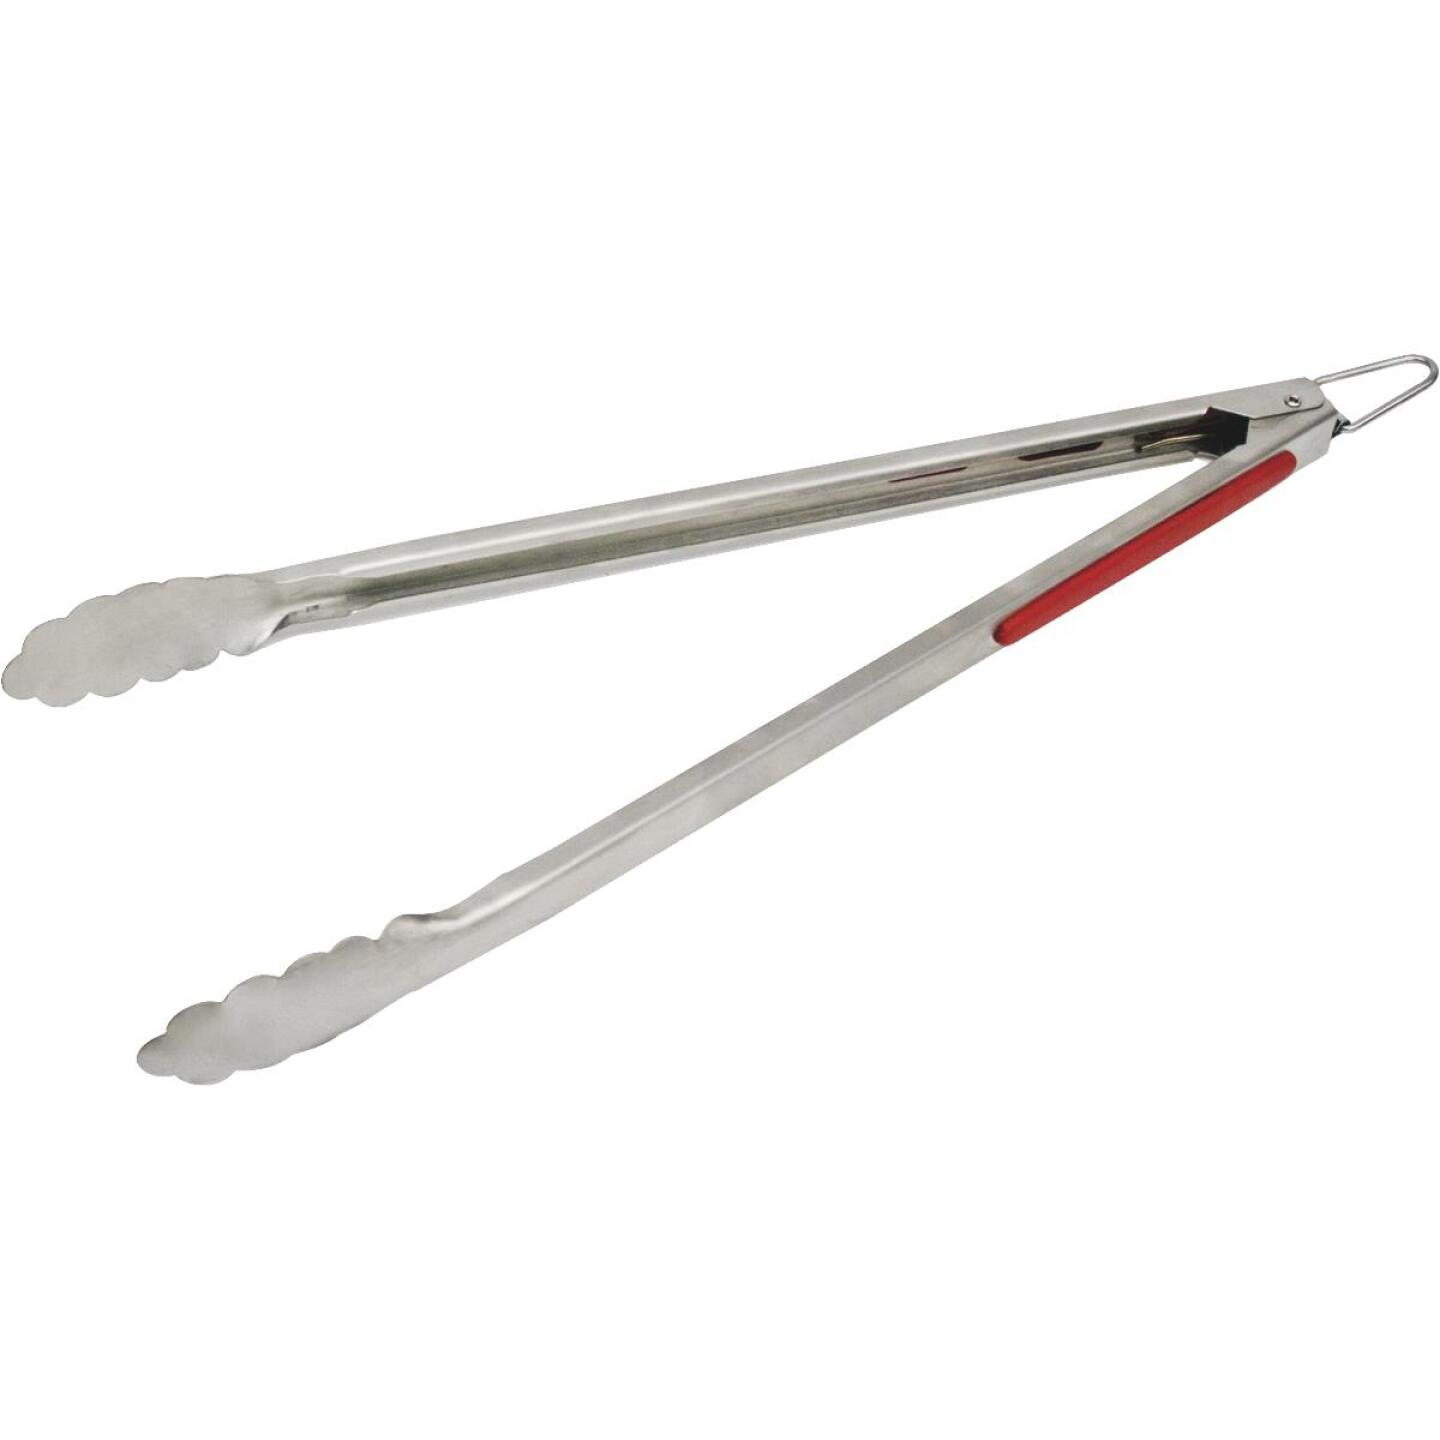 GrillPro 15 In. Stainless Steel Barbeque Tongs Image 1